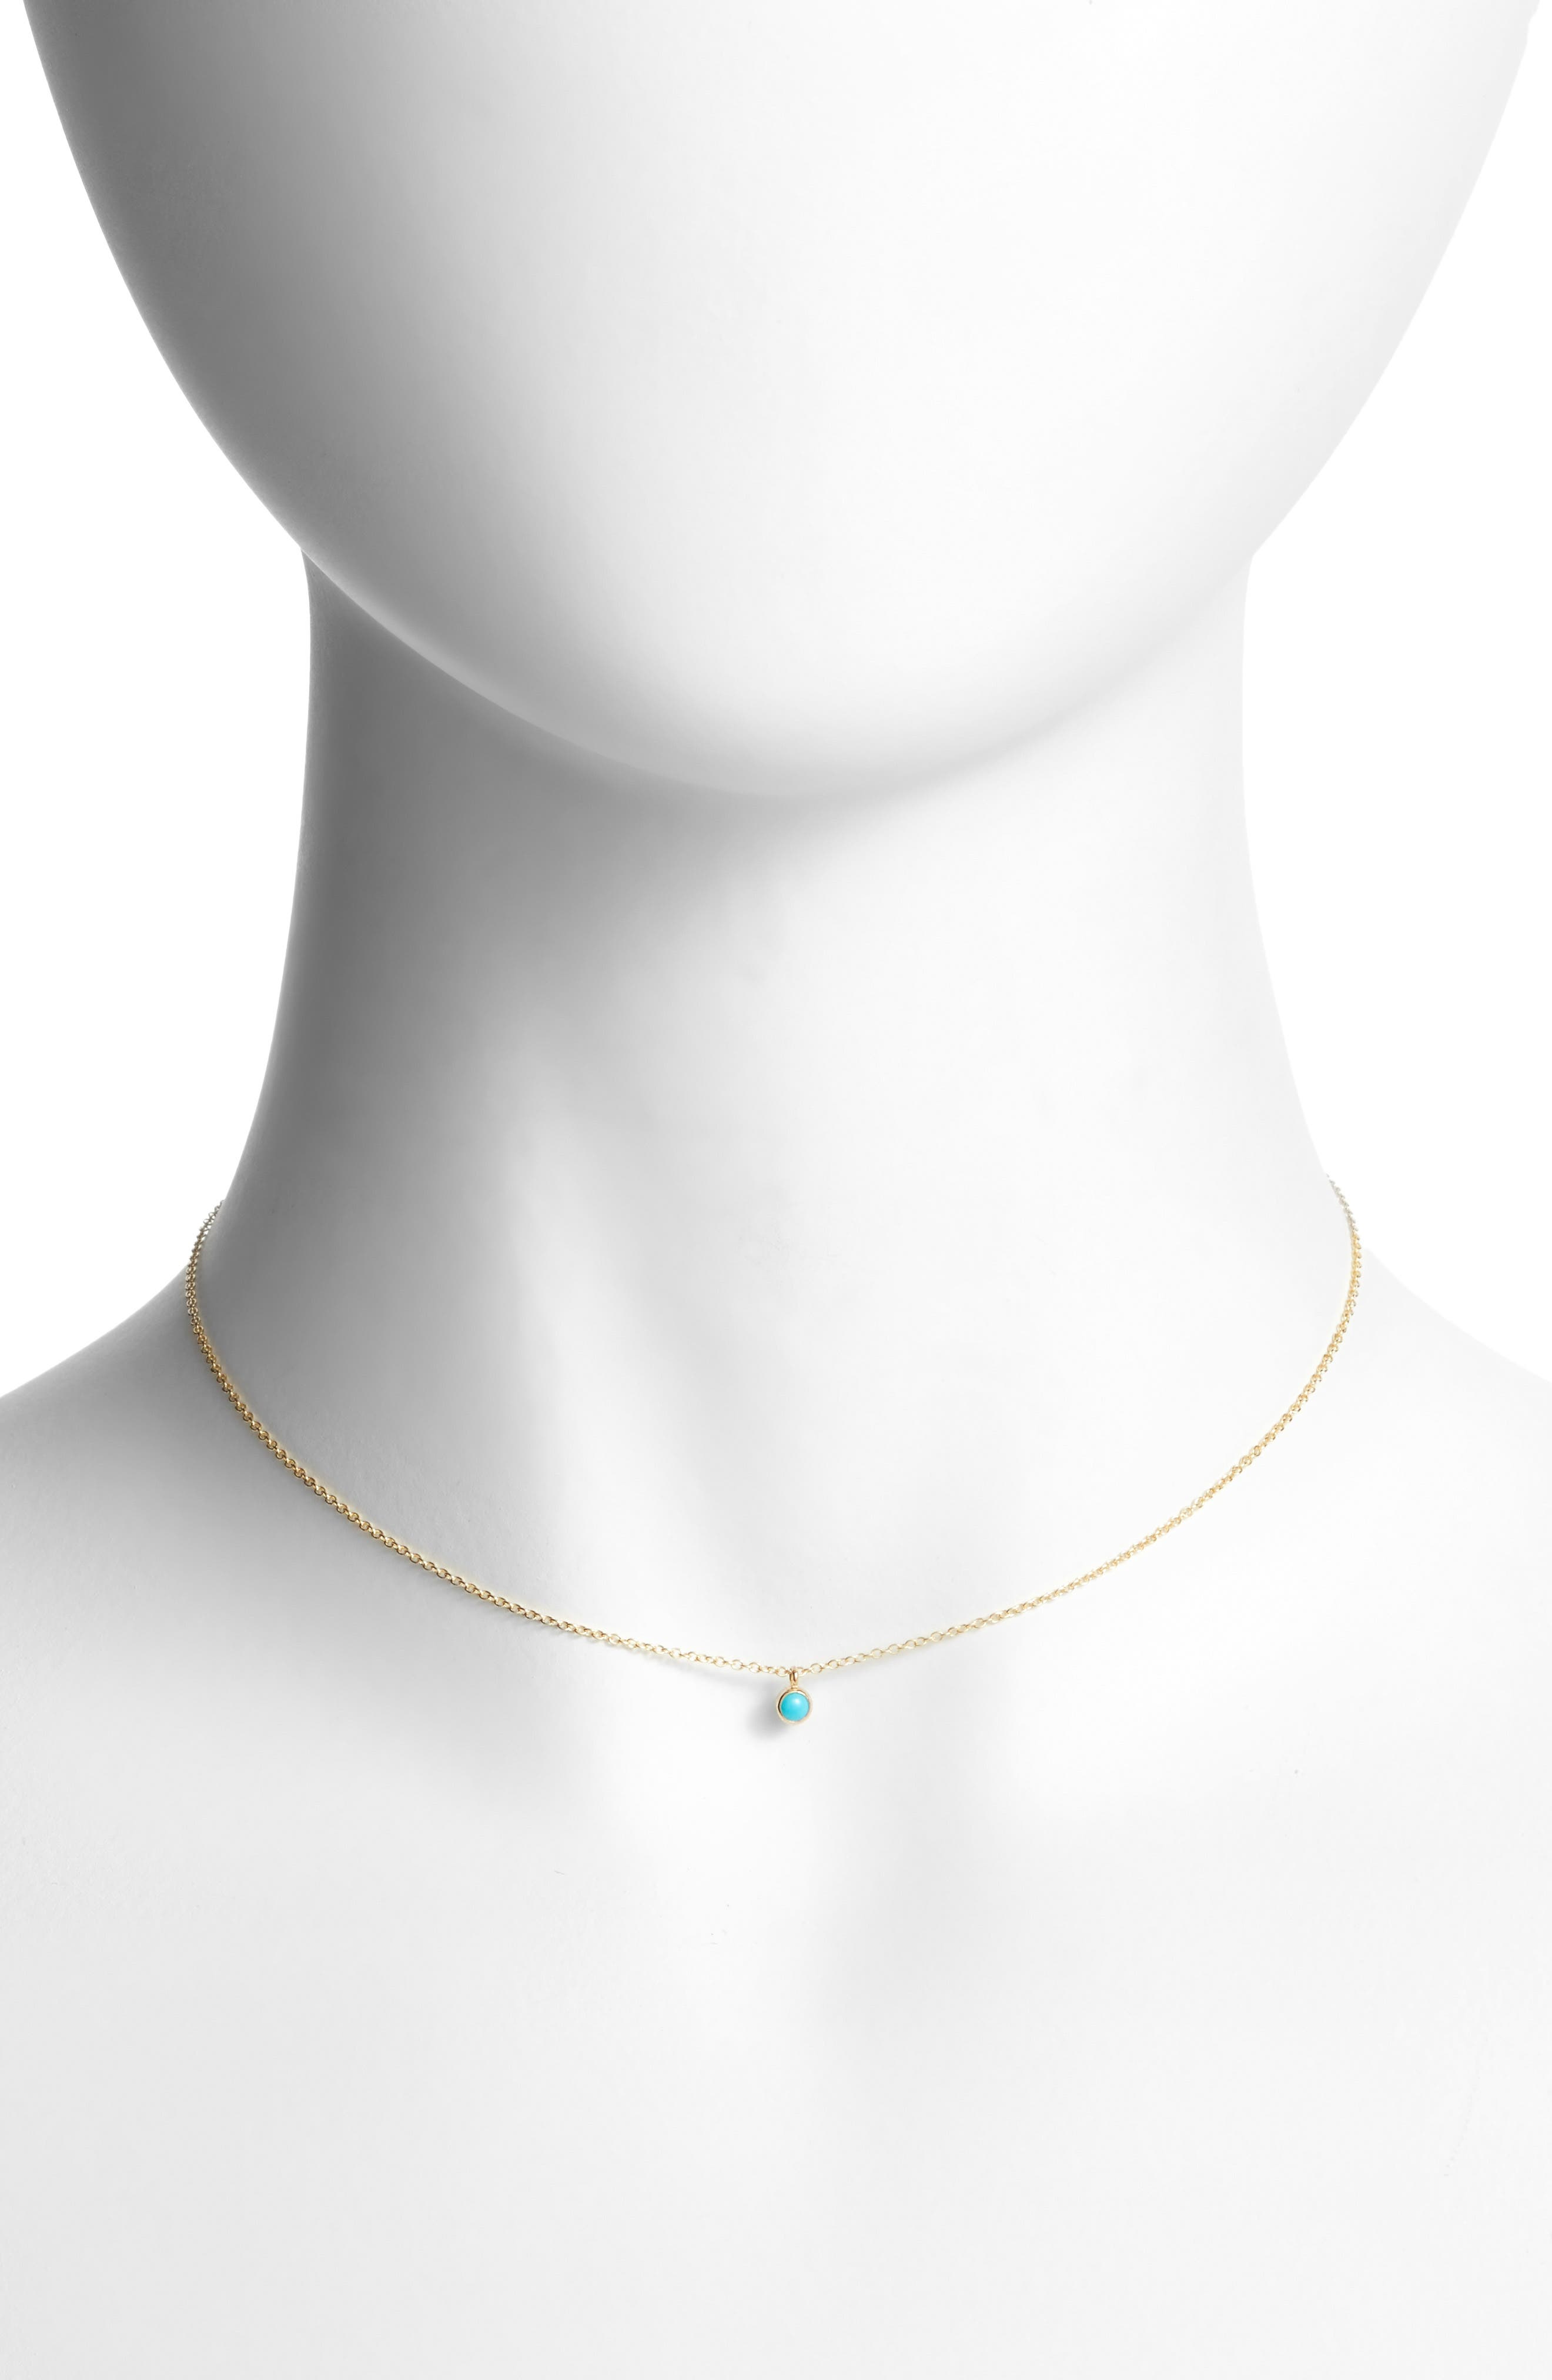 Dangling Semiprecious Stone Choker,                         Main,                         color, Yellow Gold/ Turquoise